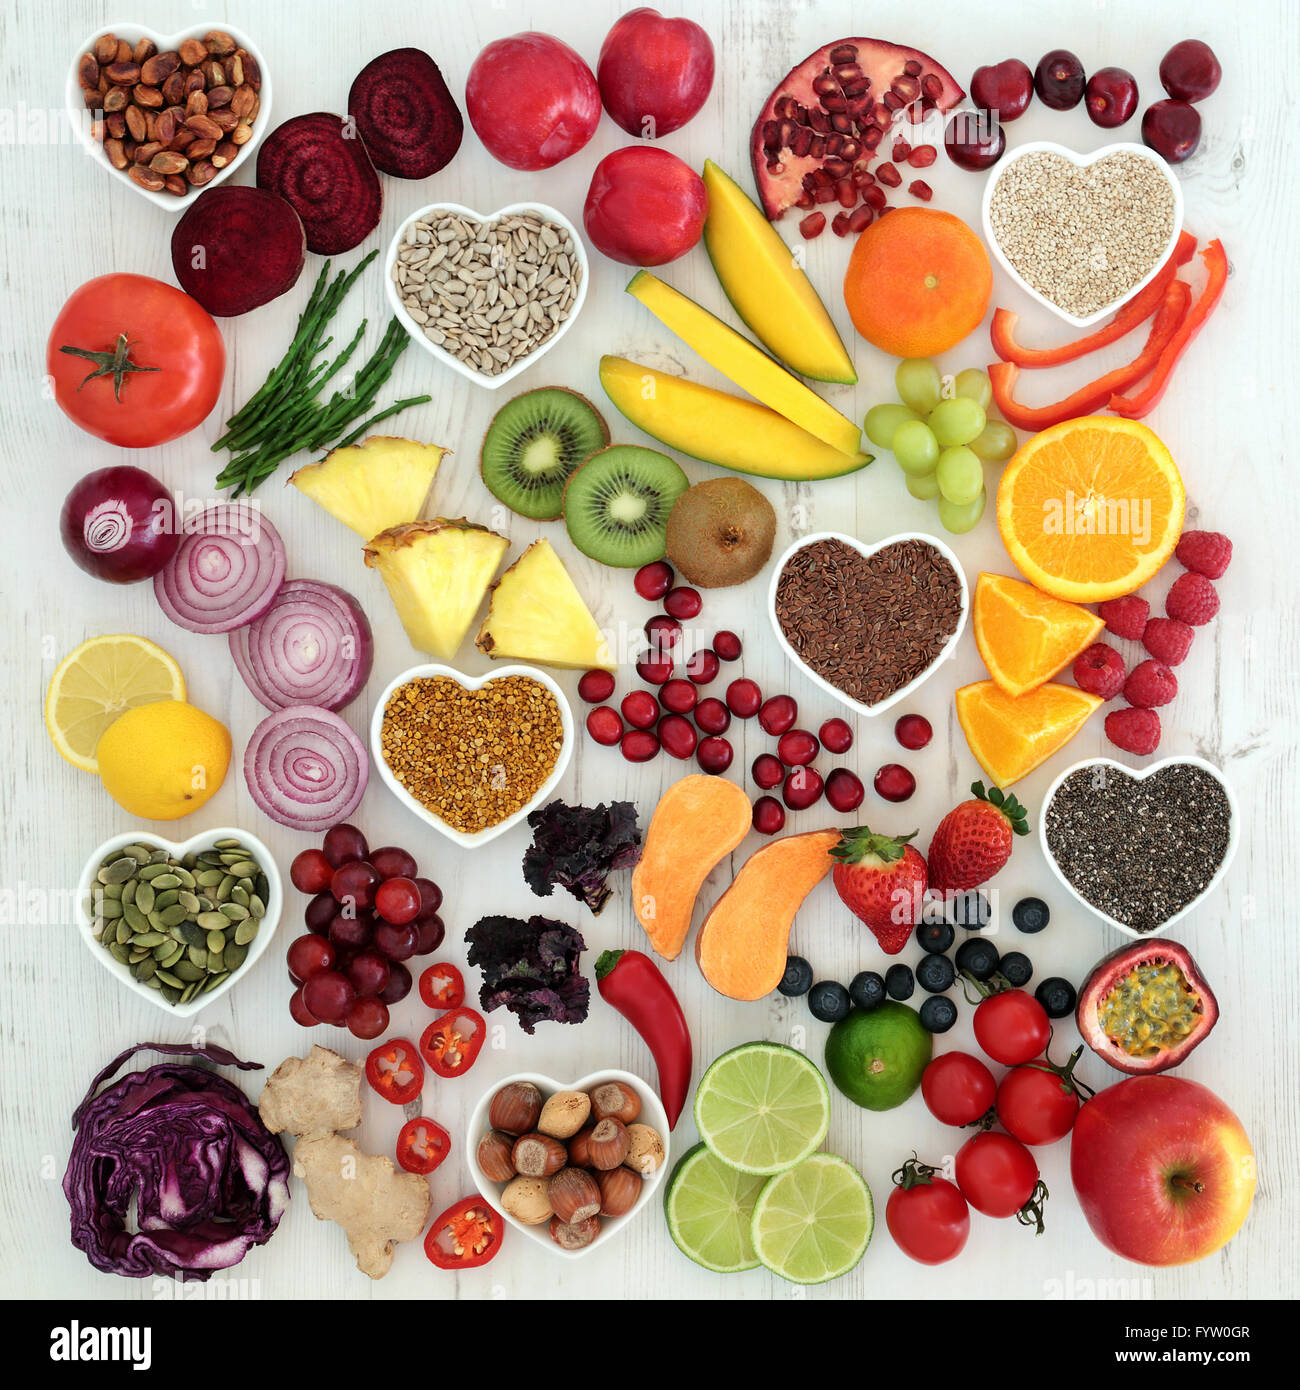 Paleolithic diet health and super food of fruit, vegetables, nuts and seeds on distressed white wooden background. - Stock Image